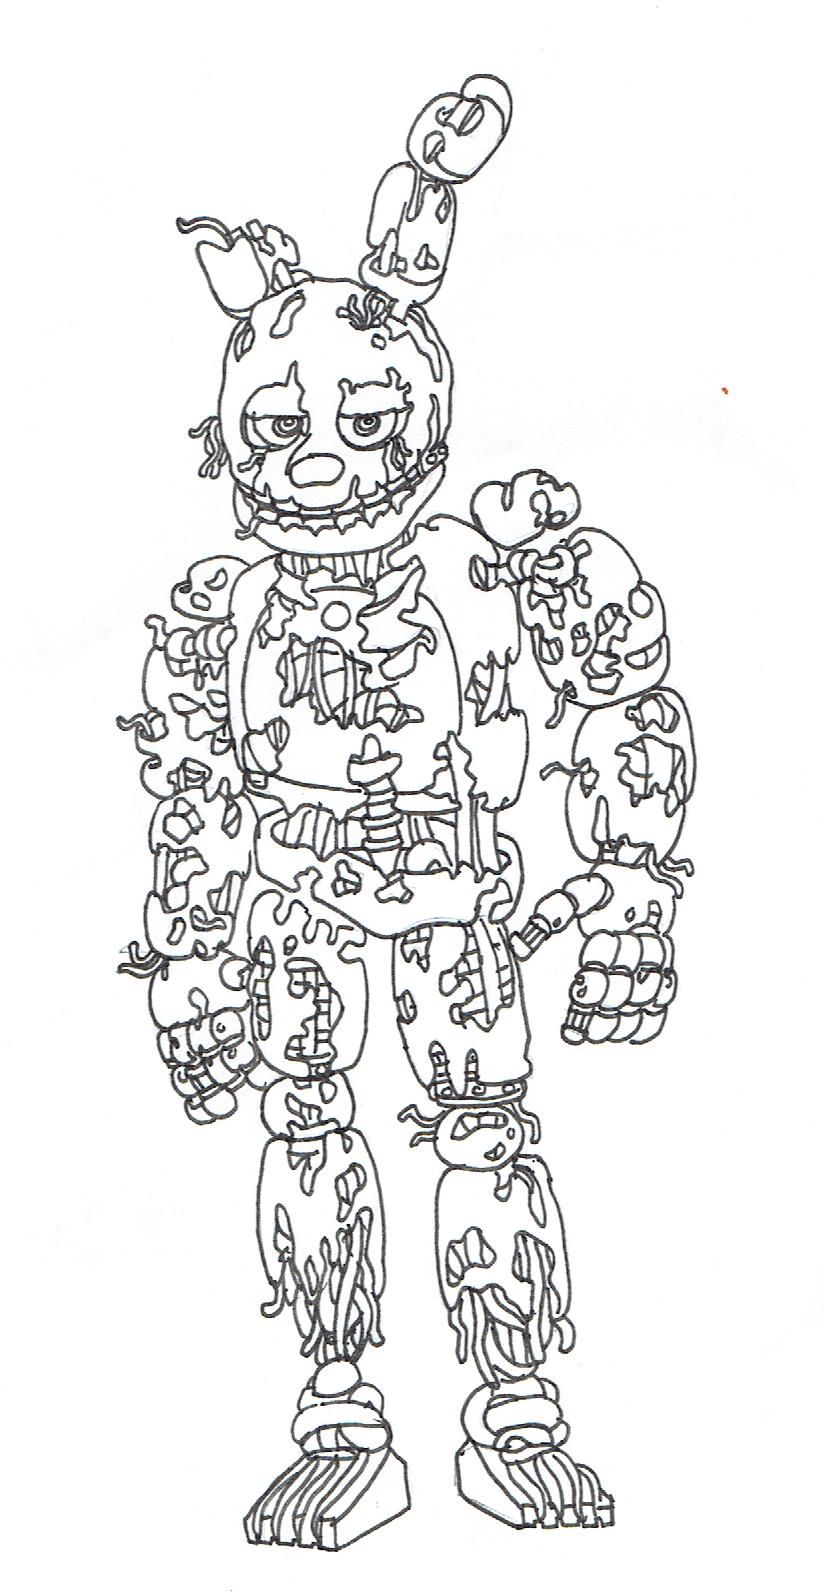 five nights at freddys coloring springtrap free sheets minion fnaf monster dinosaur for coloring pages Springtrap Coloring Page